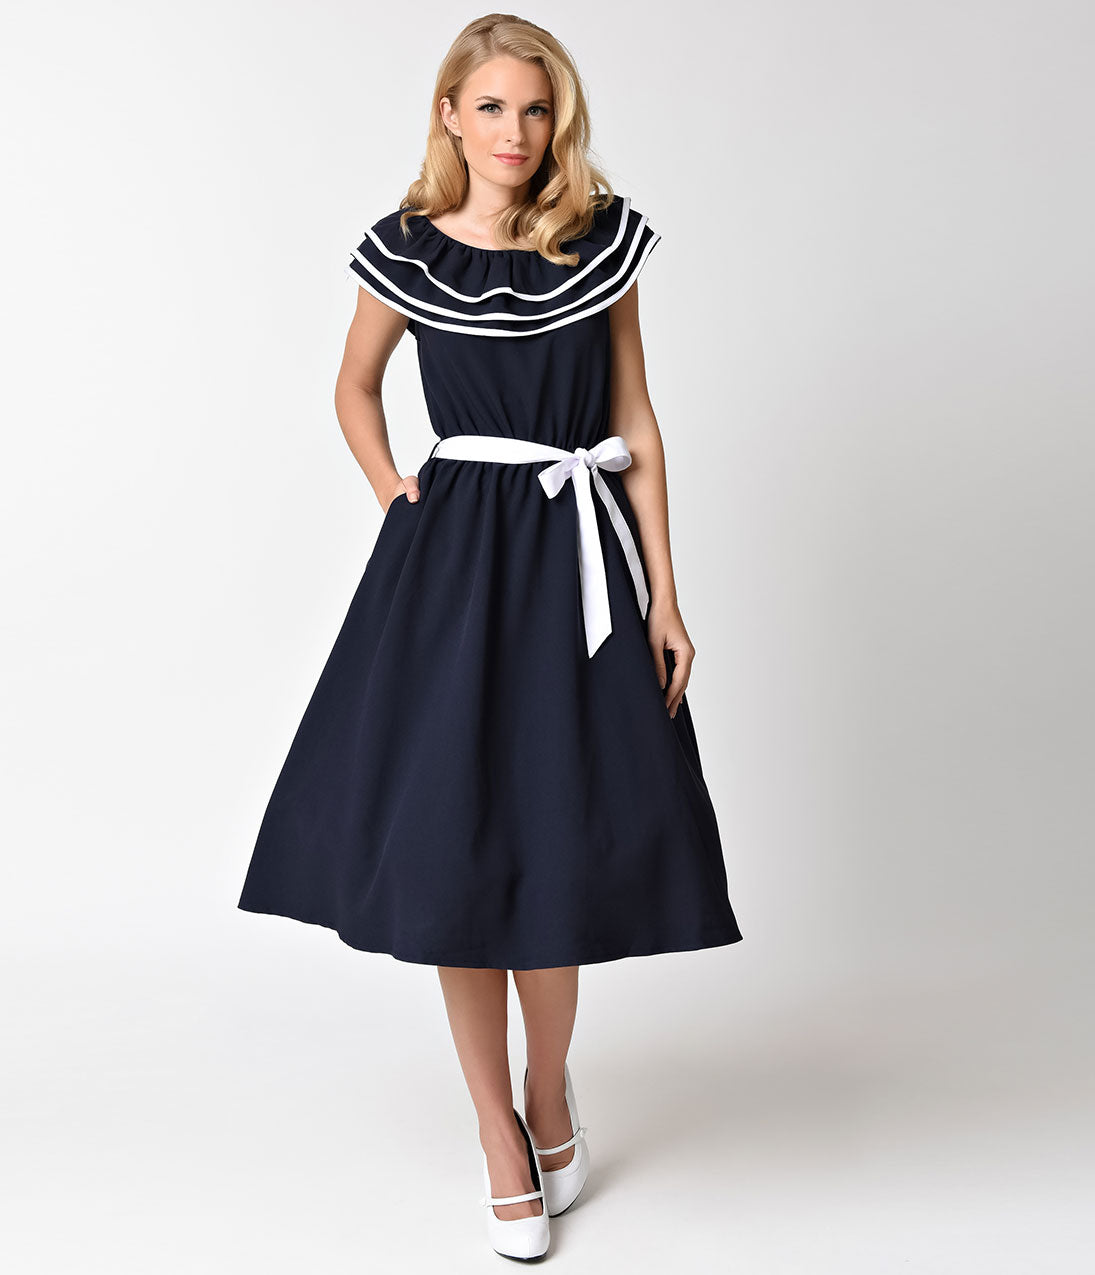 1950s Swing Dresses | 50s Swing Dress Voodoo Vixen Navy Blue Nautical Ruffle Hope Swing Dress $39.00 AT vintagedancer.com